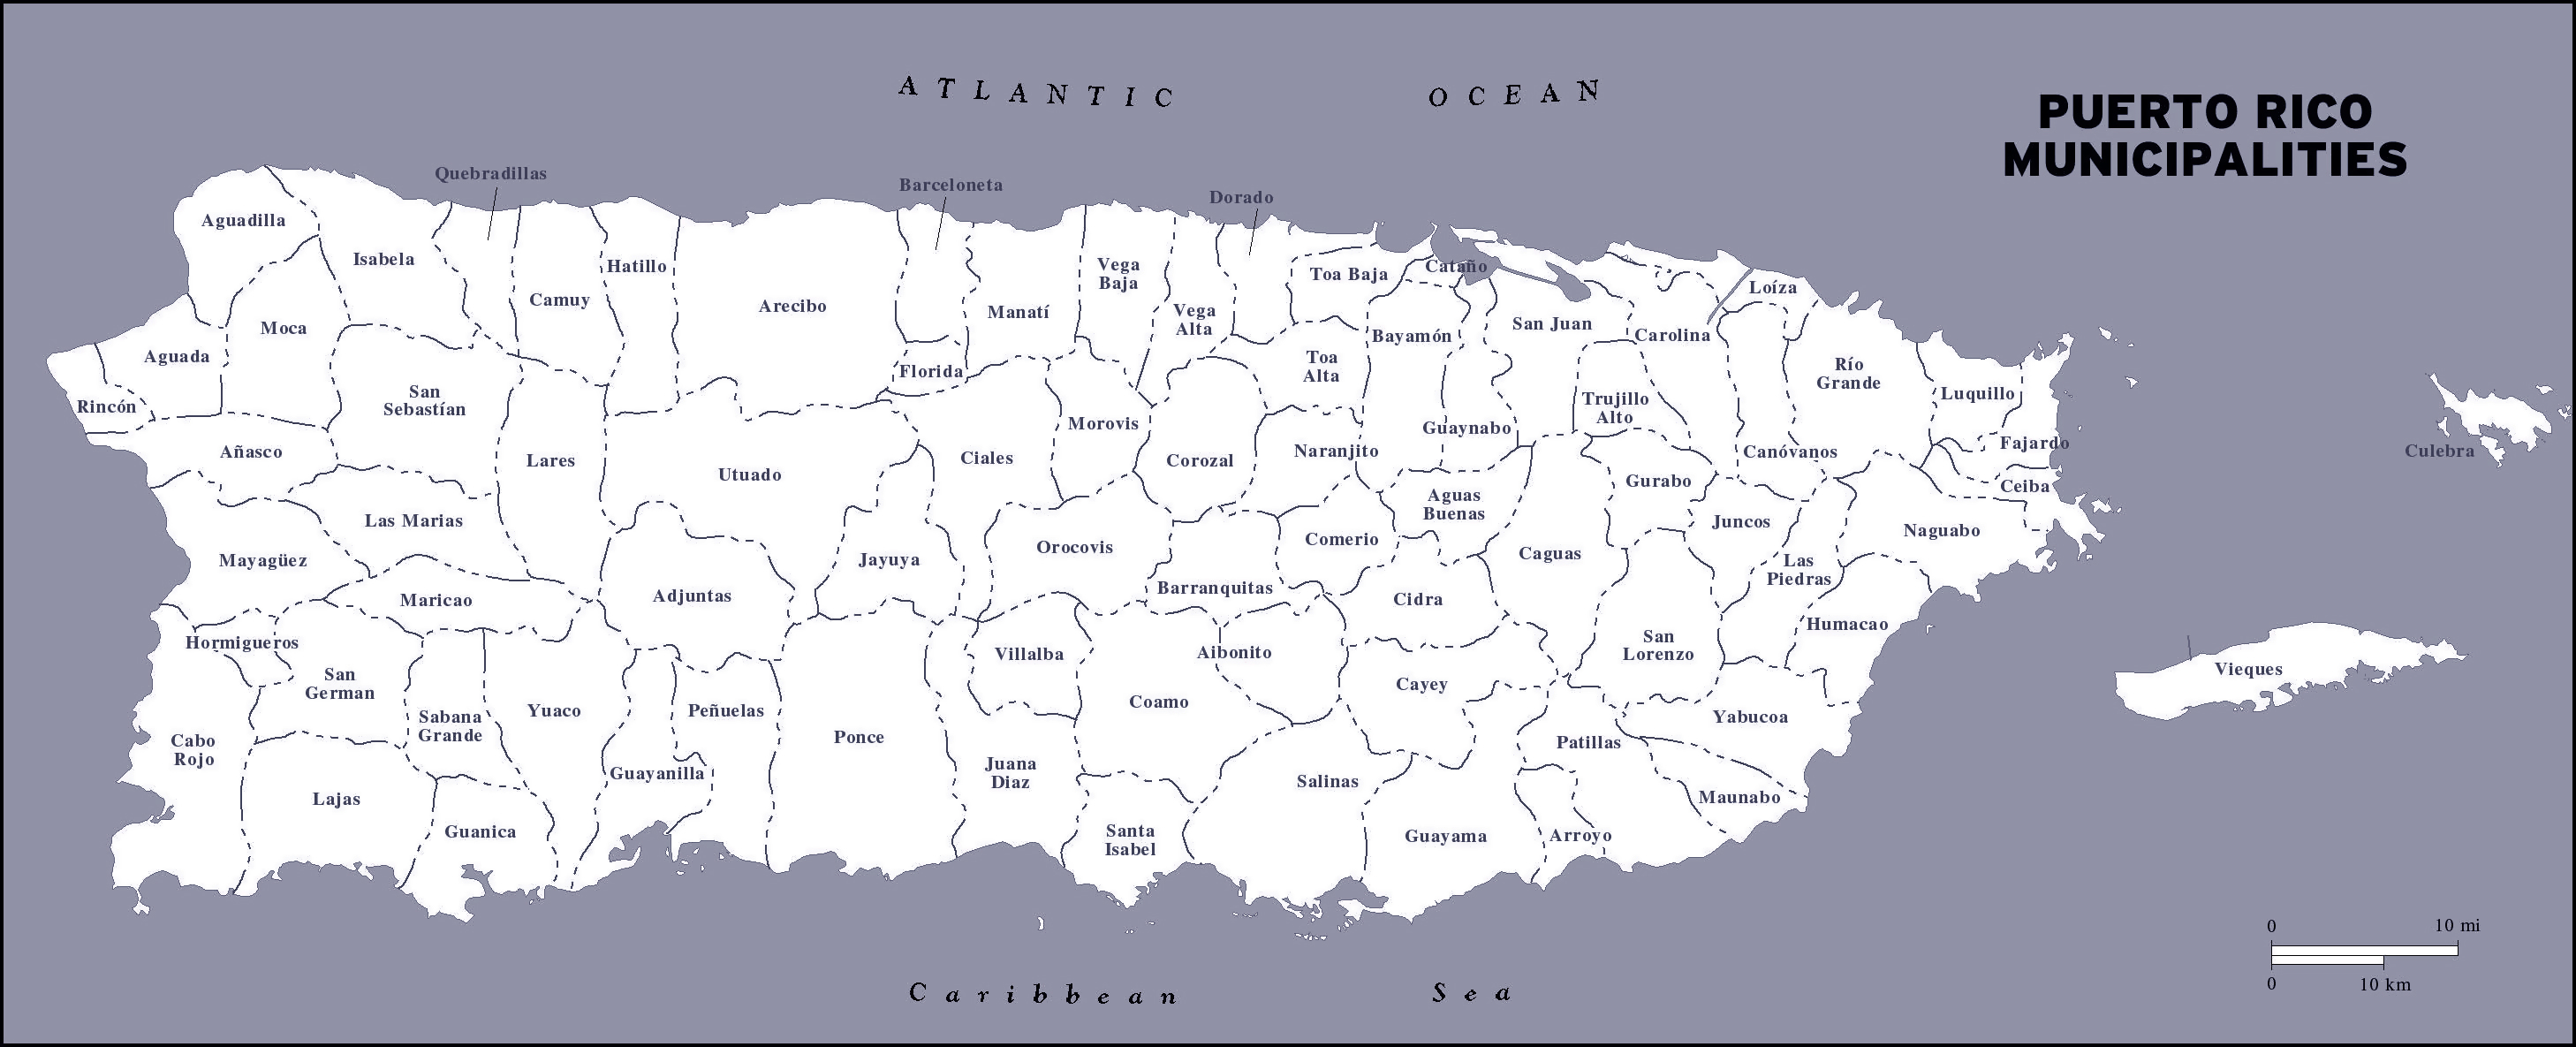 It's just a photo of Geeky Printable Map of Puerto Rico